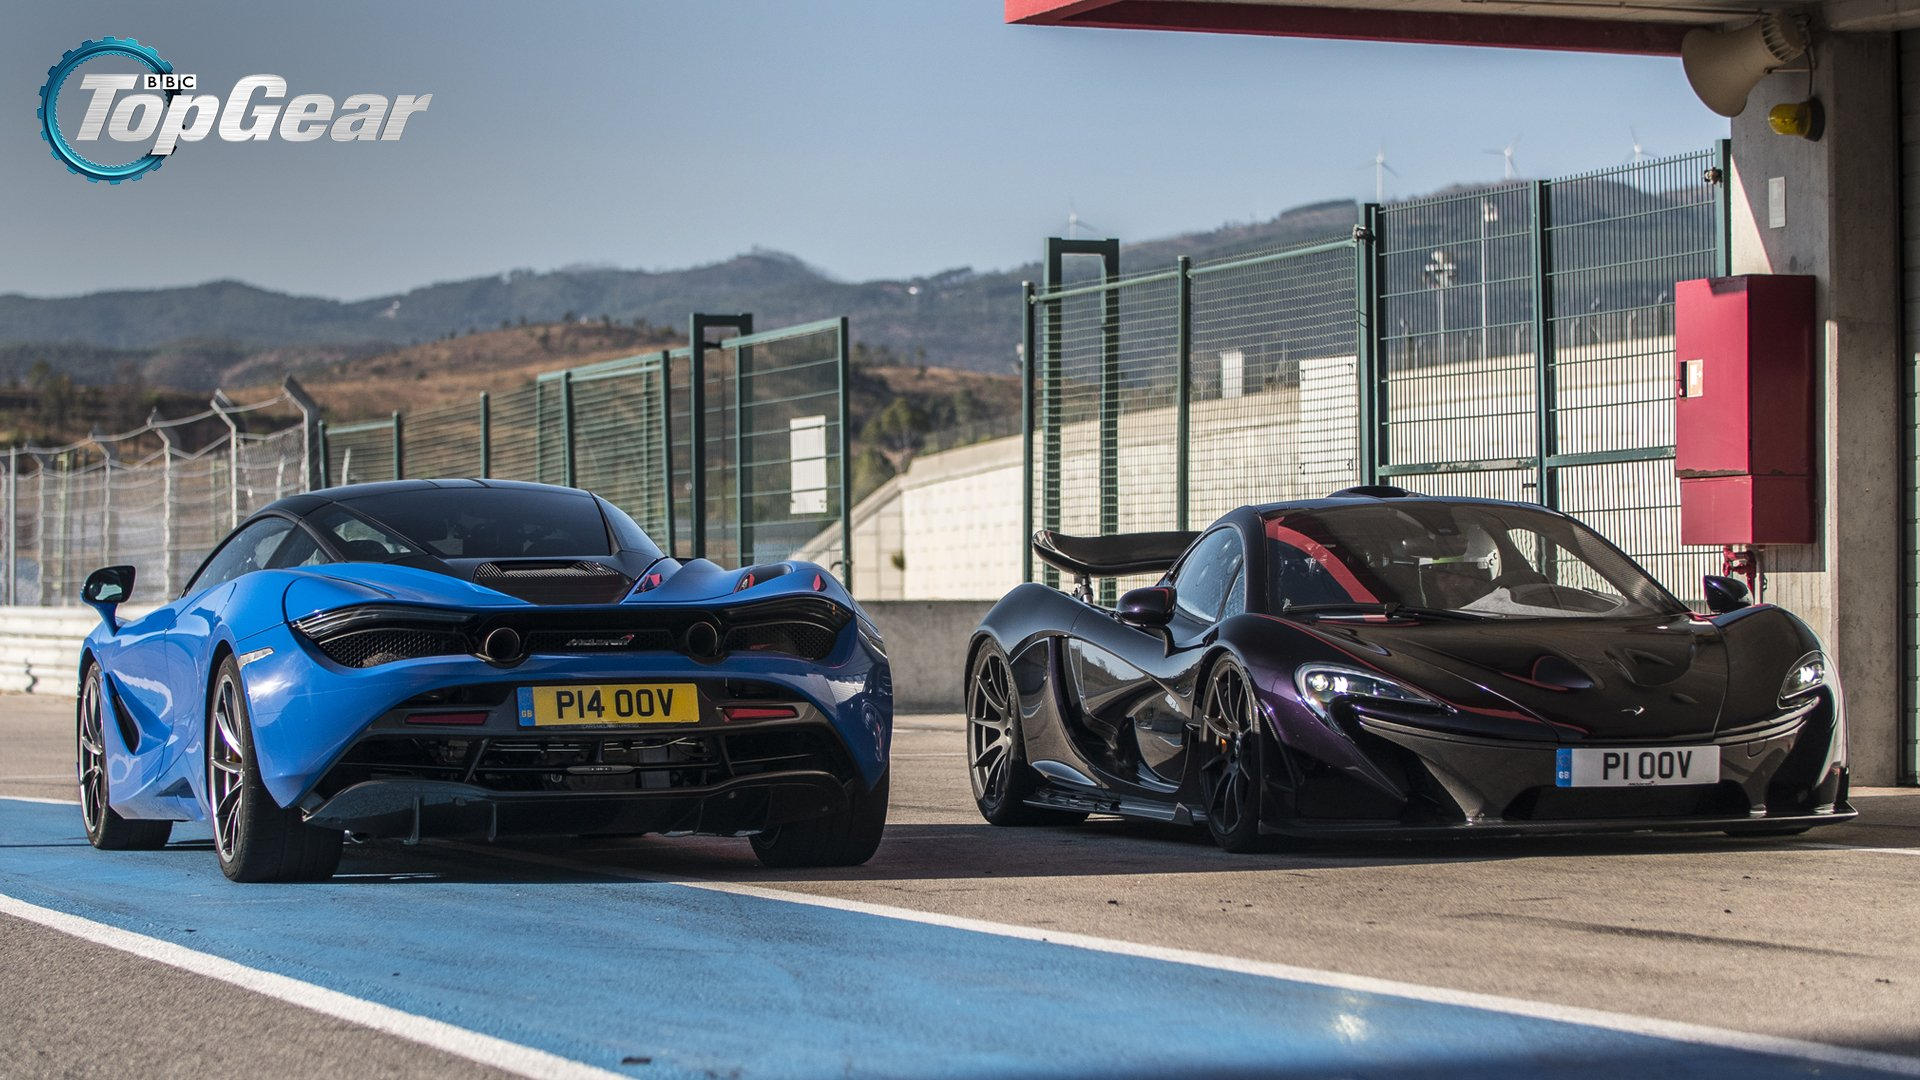 Top Gear On Twitter Tonight Harrismonkey Is Back At Portimao To Answer A Supremely Interesting Question Just How Close Can The New McLaren 720S Get